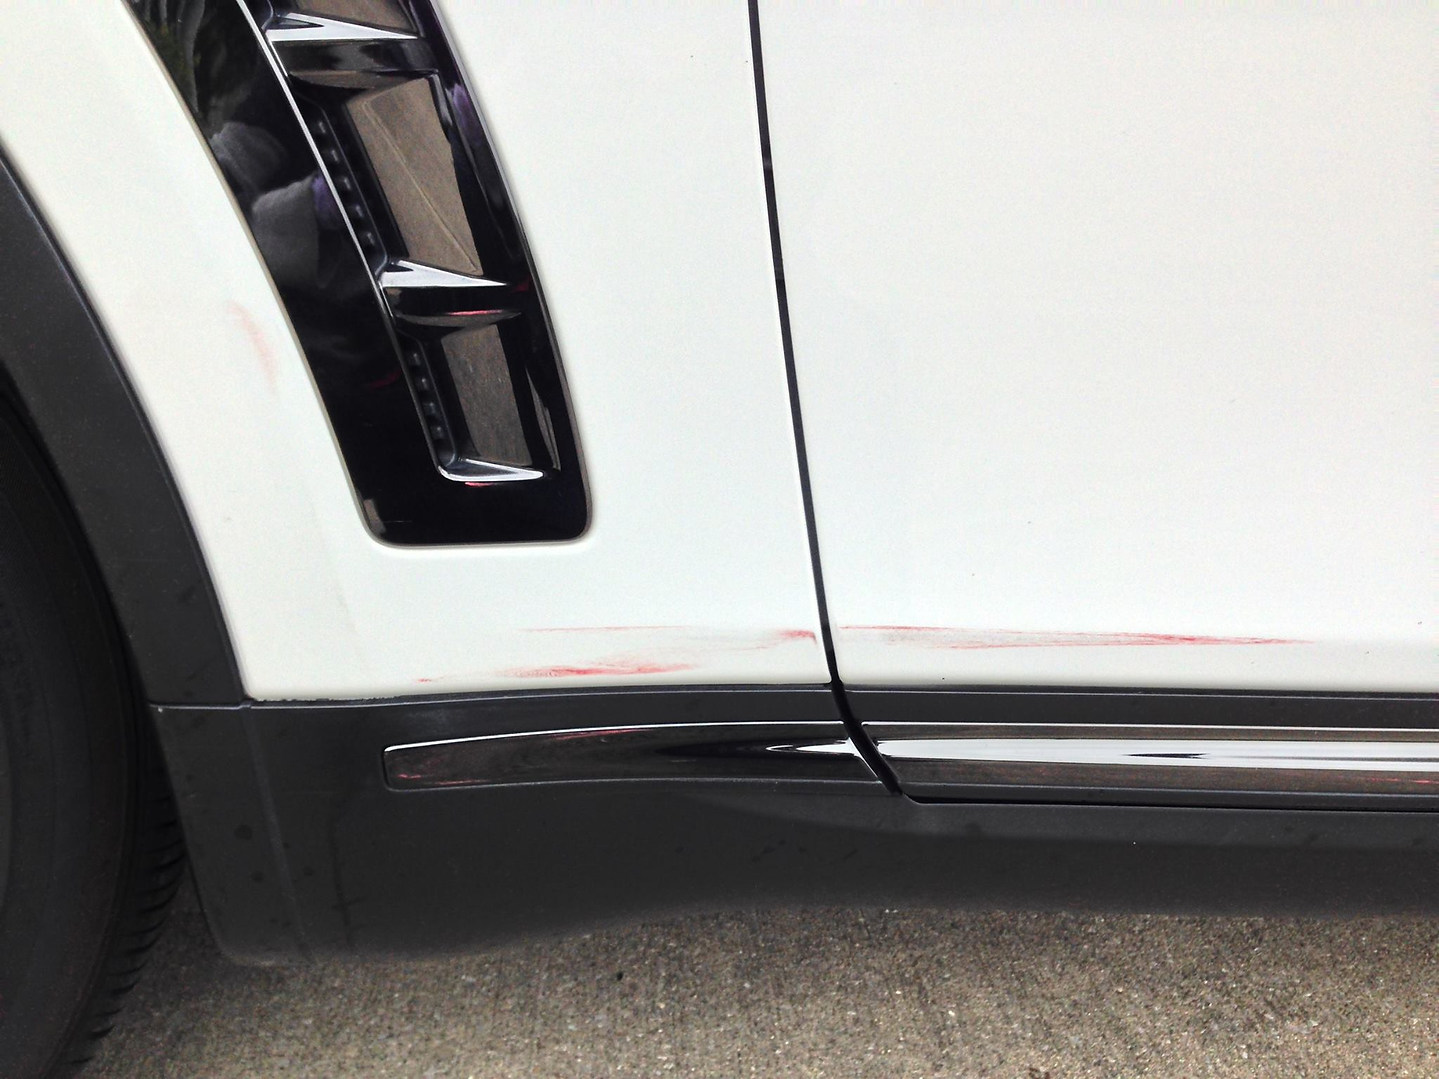 Paint transfer removal before